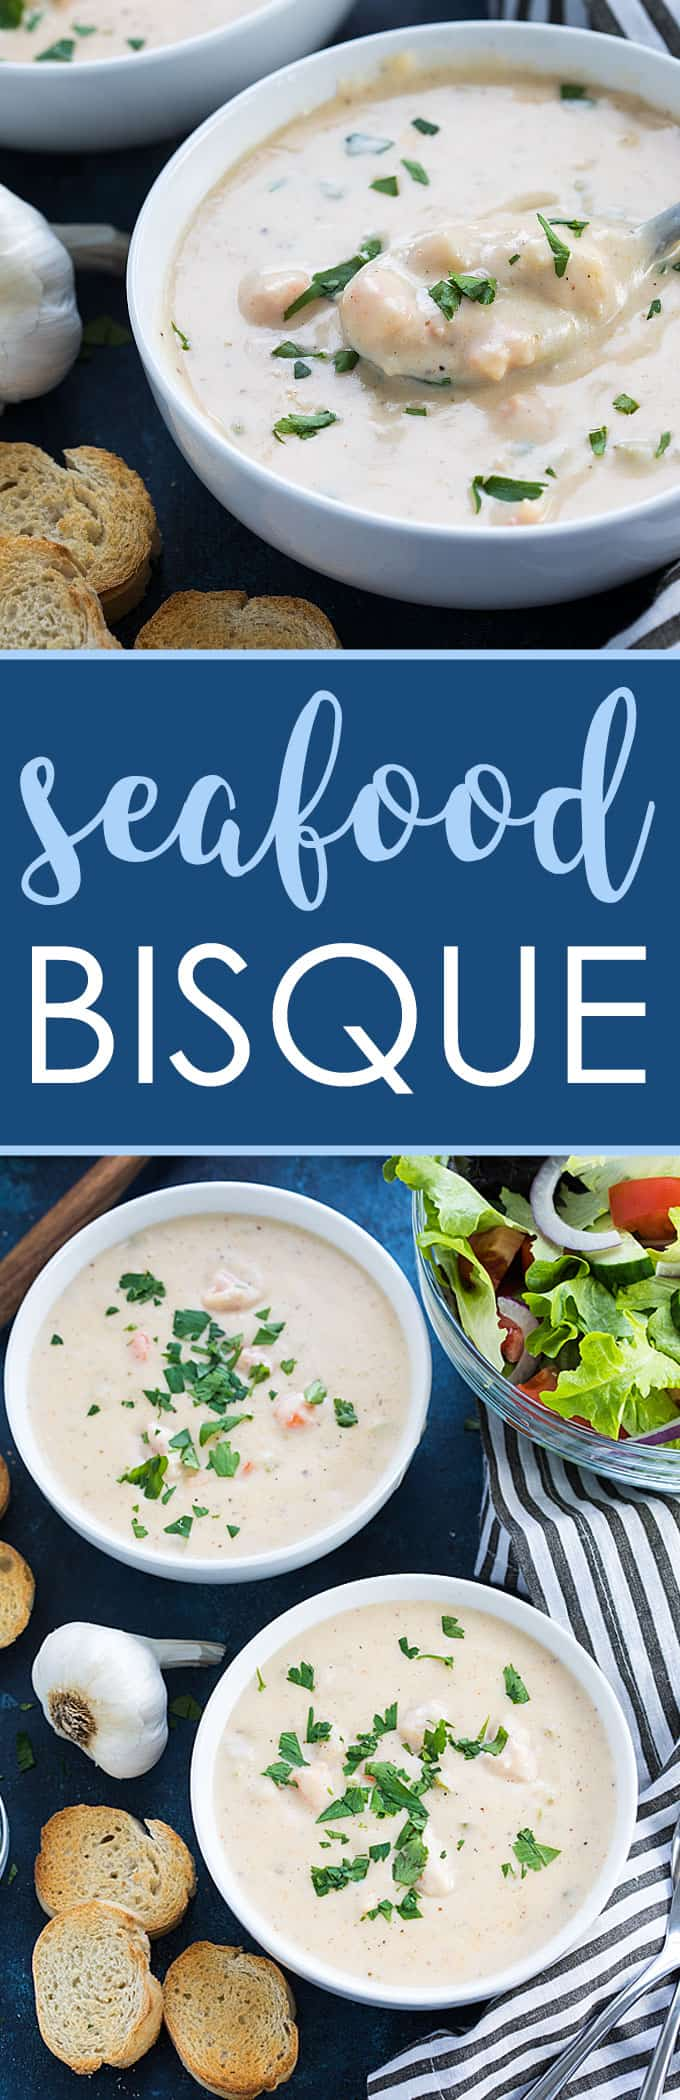 A two image vertical collage of seafood bisque with overlay text in the center.